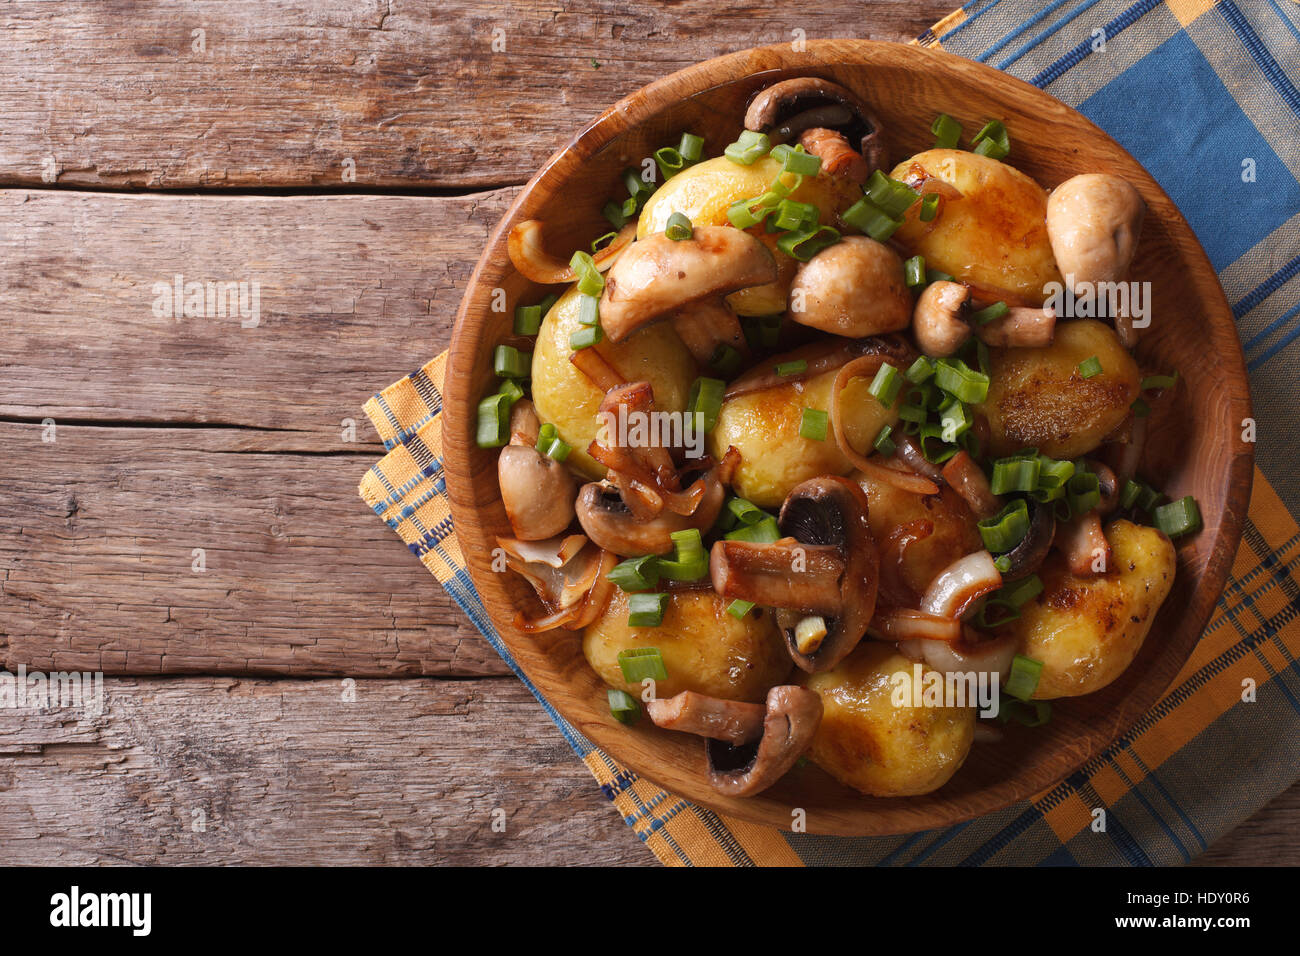 Homemade Food: Potatoes with mushrooms closeup. horizontal view from above - Stock Image